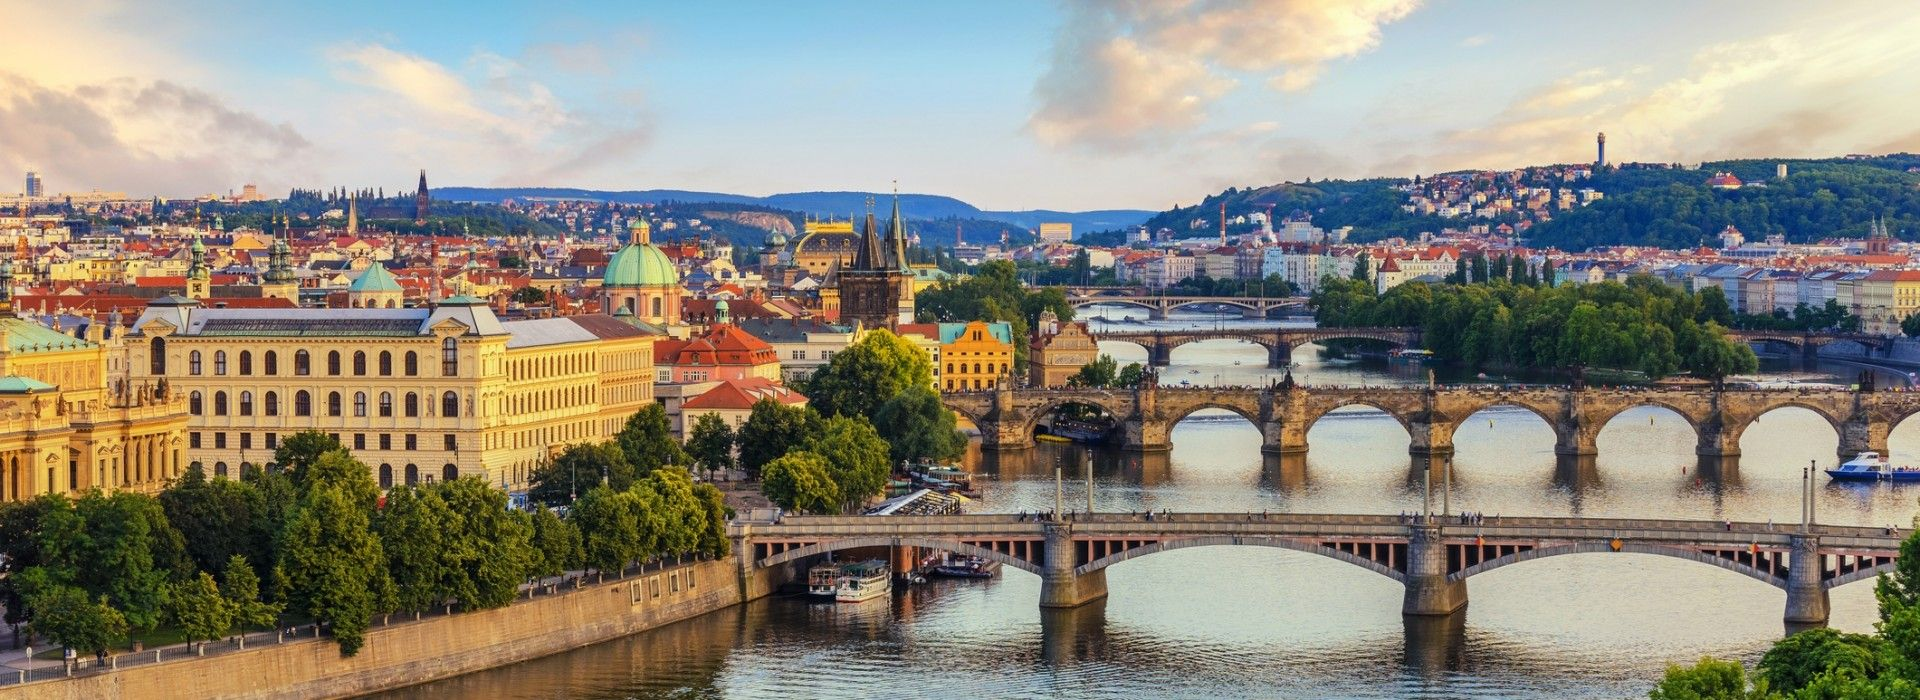 Cultural, religious and historic sites Tours in Prague